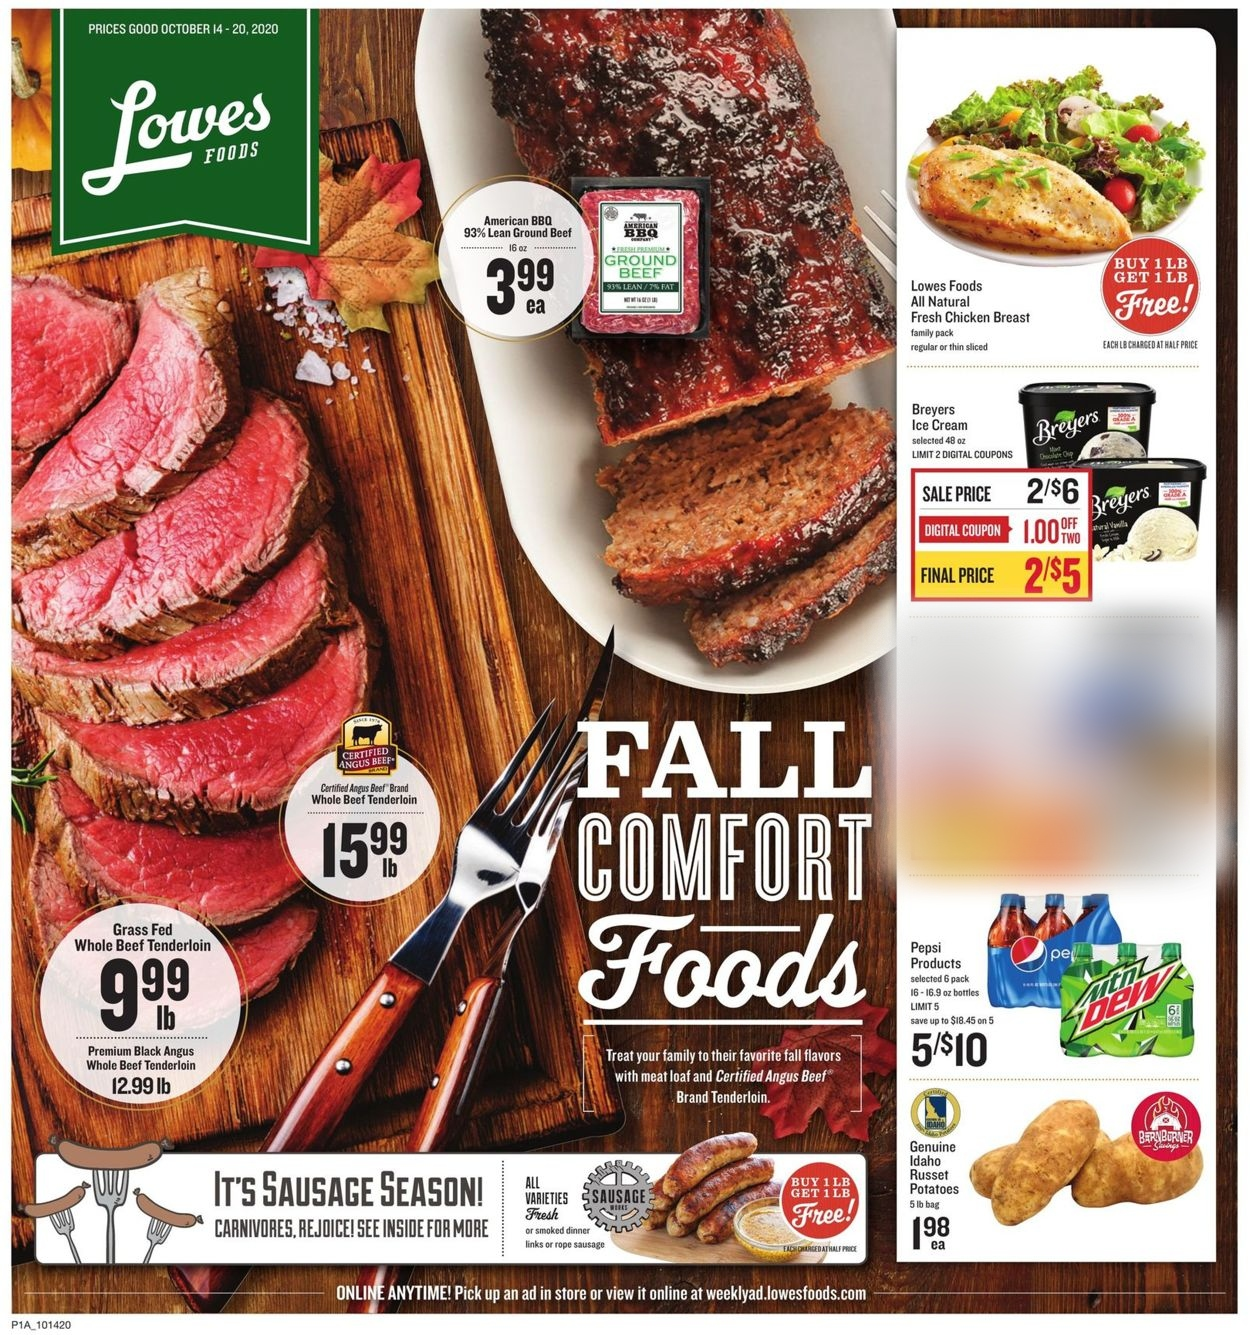 Lowes Foods Current weekly ad 10/14   10/20/2020   frequent ads.com